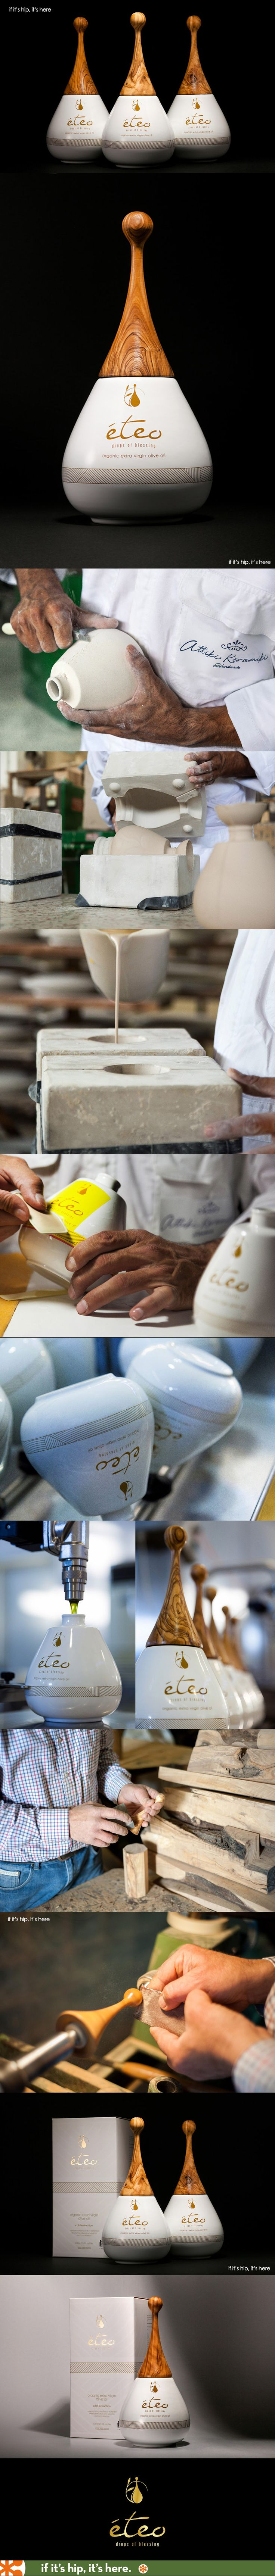 """Eteo Drops of Blessing Extra Virgin Olive Oil comes in a hand crafted porcelain bottle with top made from olive tree wood. - Brought into harmony with one another, creating the """"perfect drop-like"""" shape bottle."""